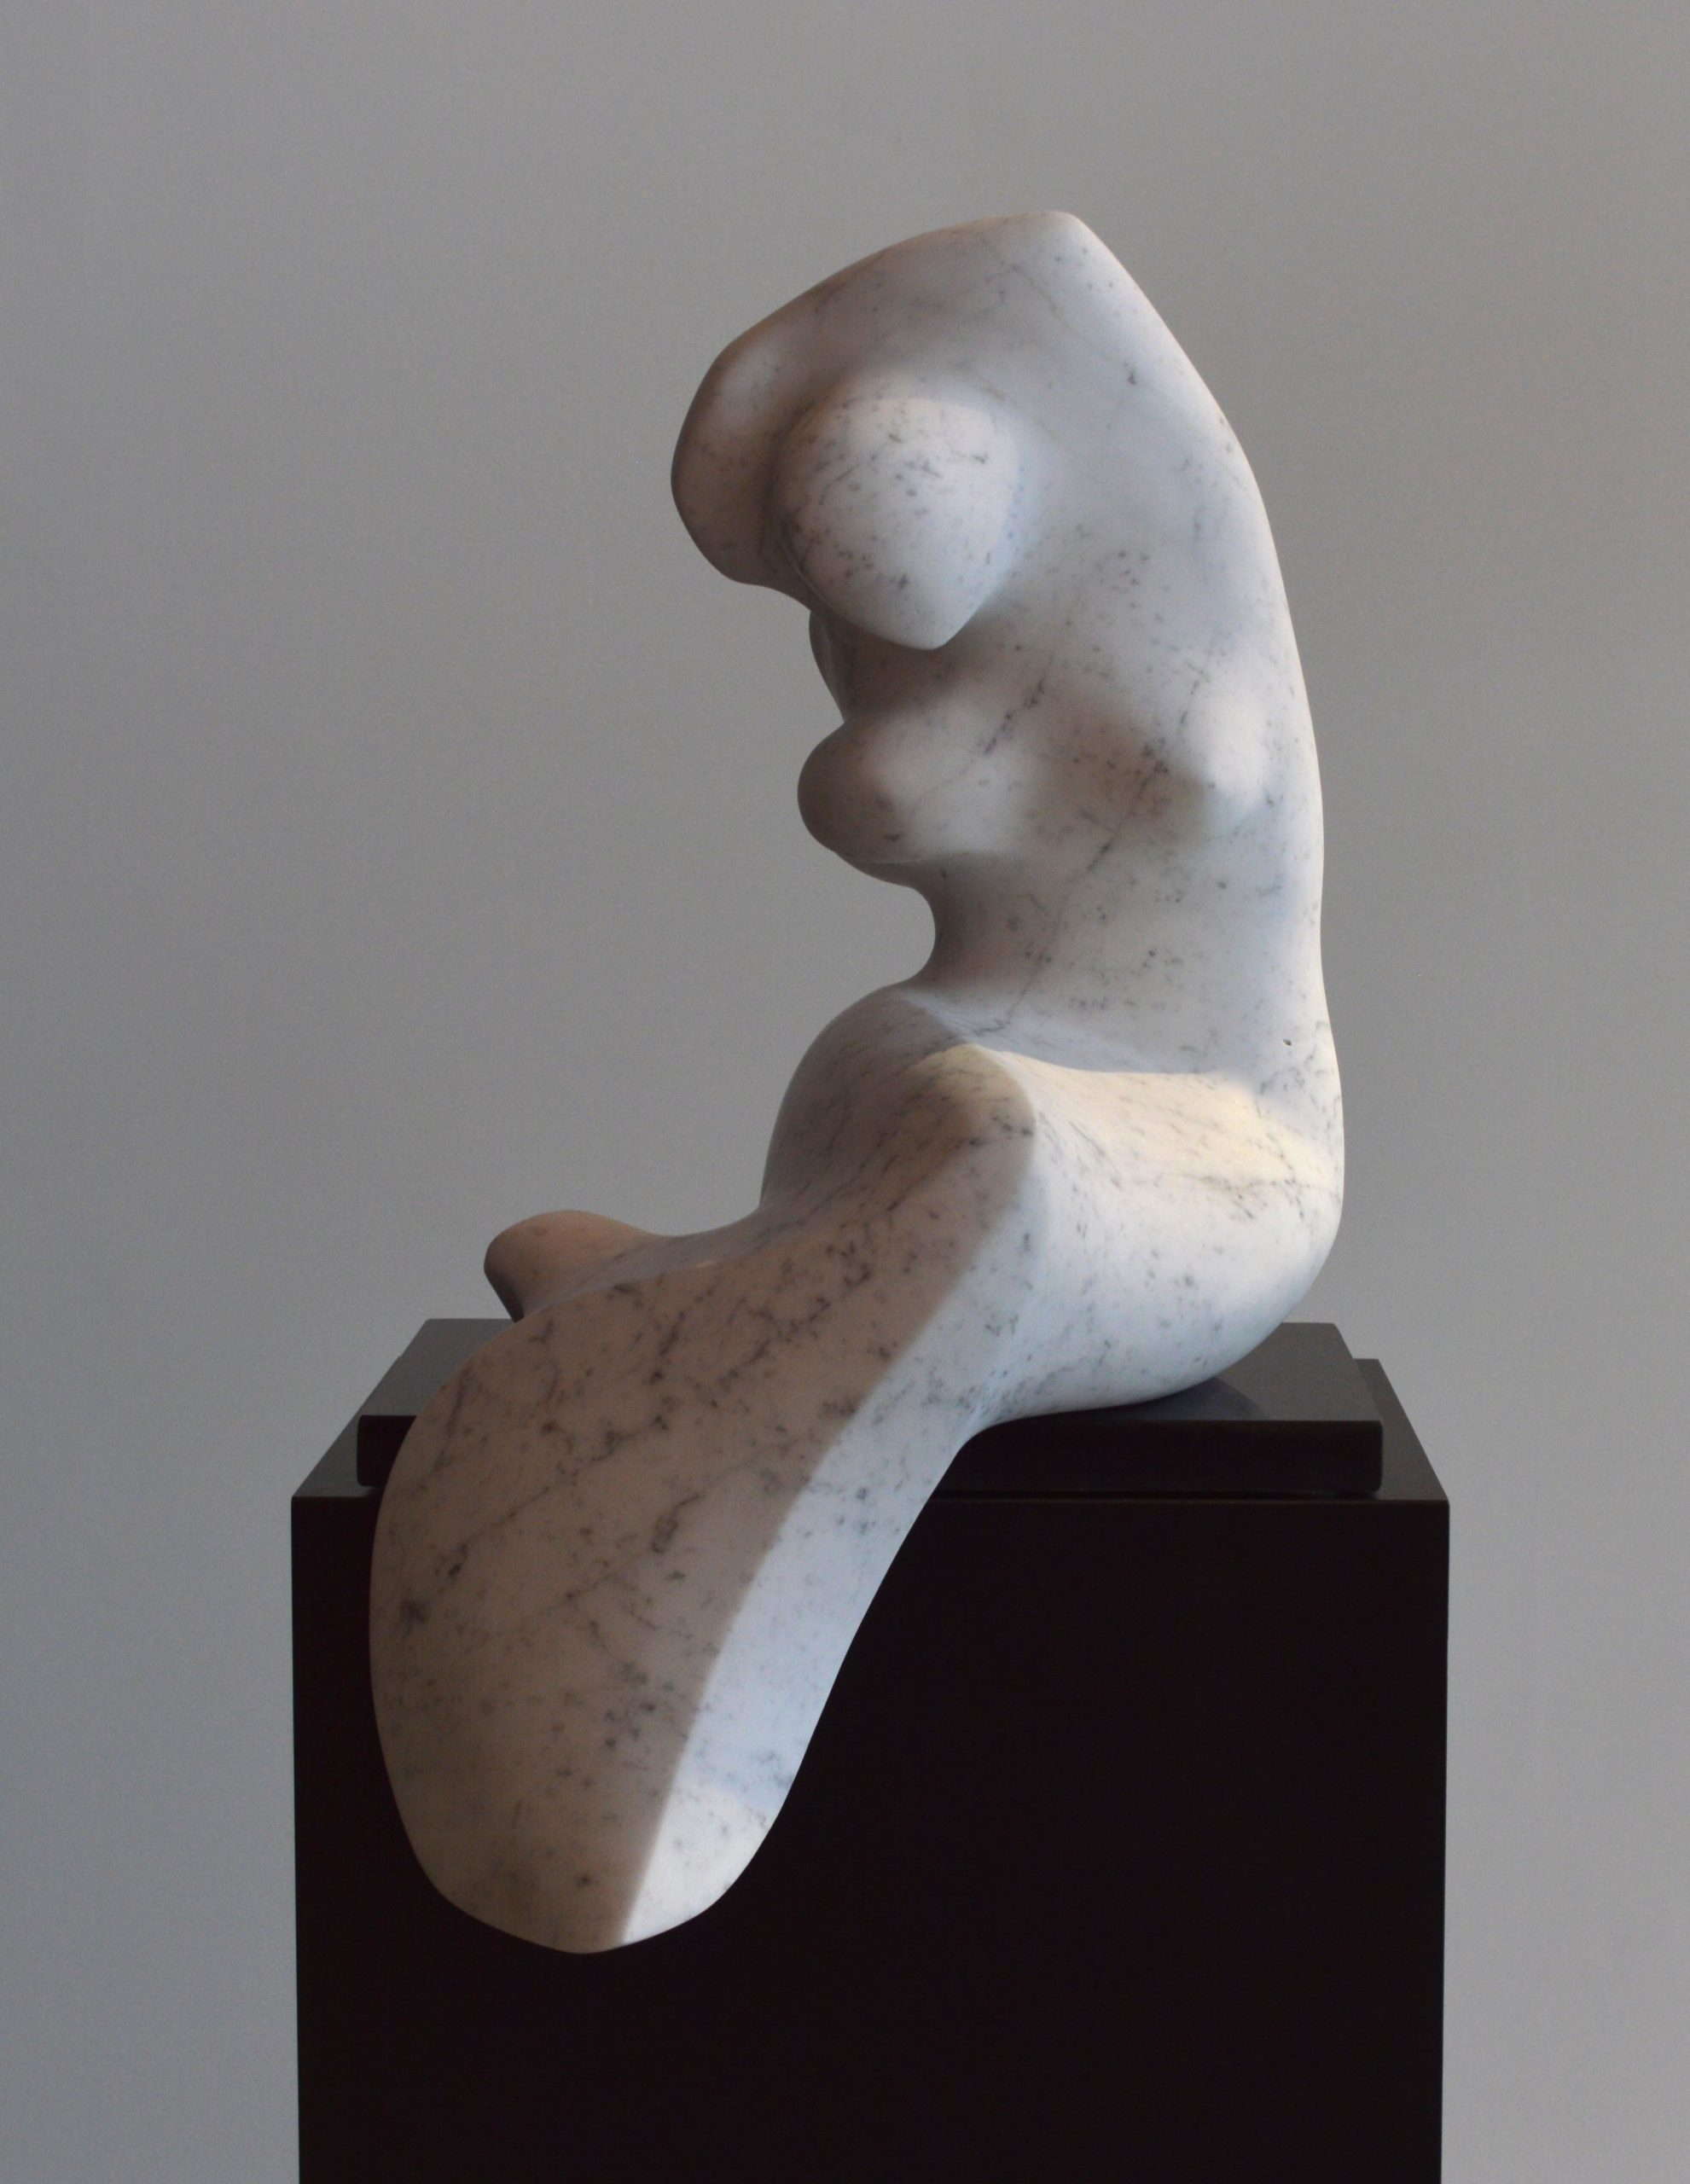 michael binkley sculptor stone sculoture female nude abstract